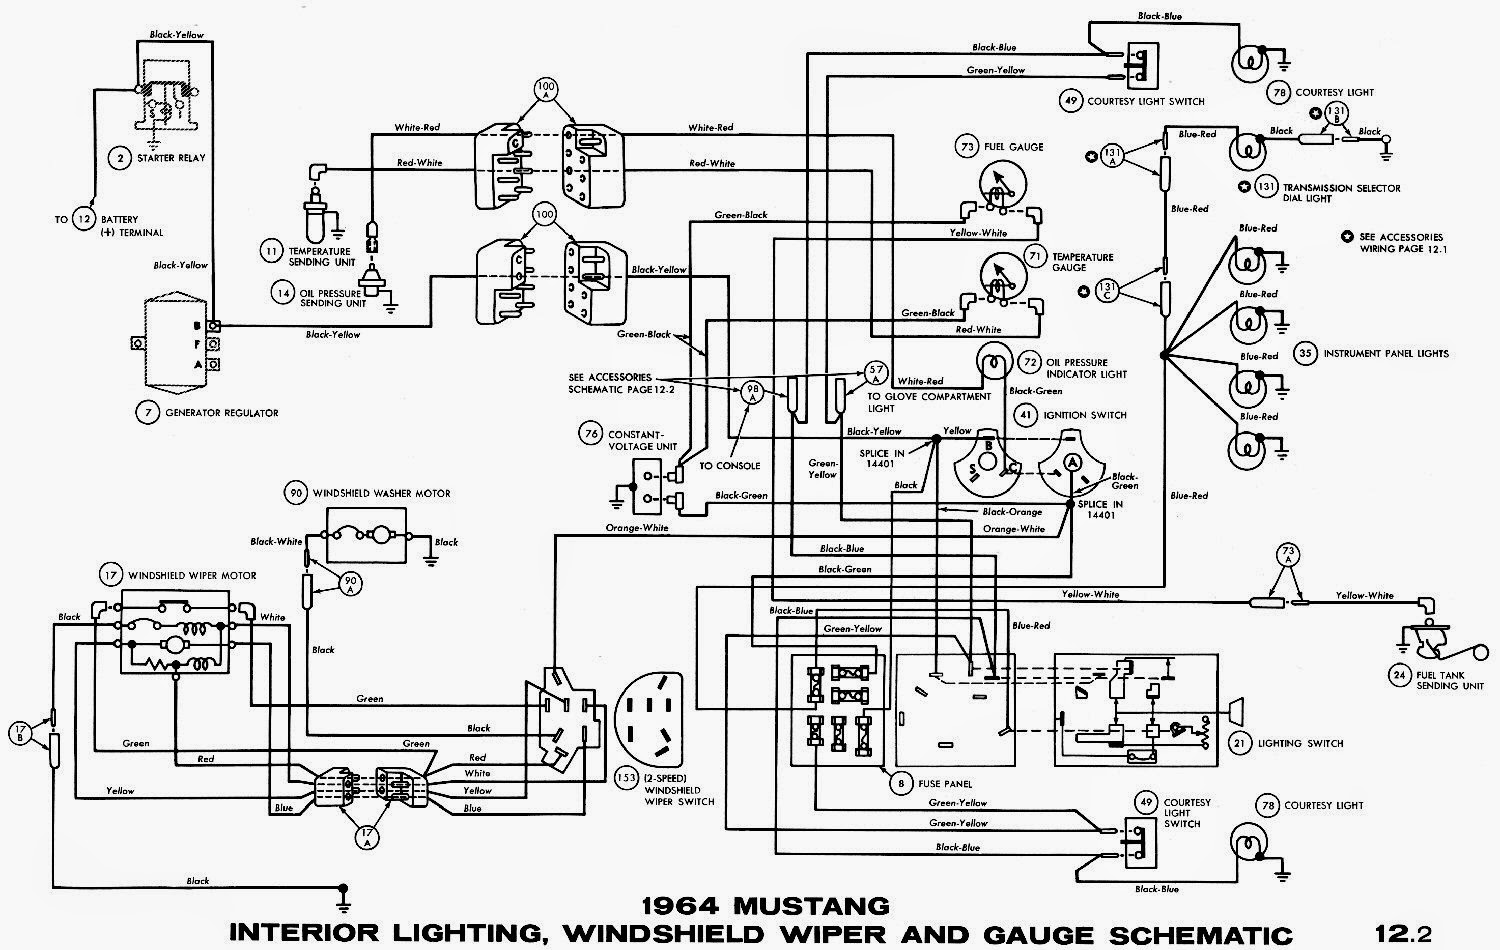 1964 Mustang Wiring Diagrams | Schematic Wiring Diagrams